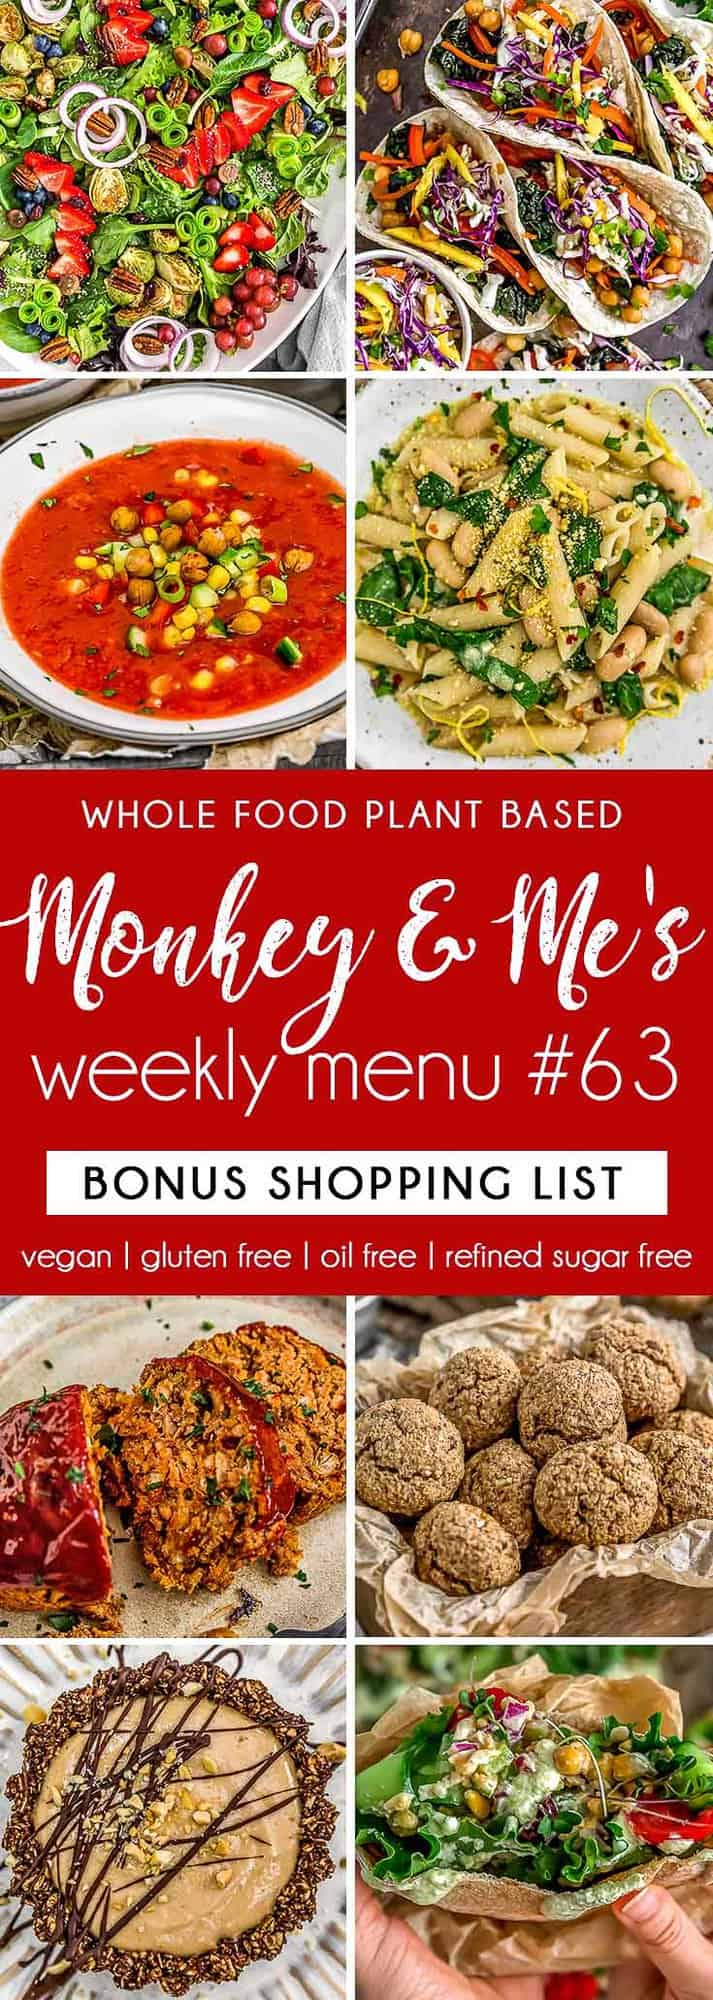 Monkey and Me's Menu 63 featuring 8 recipes